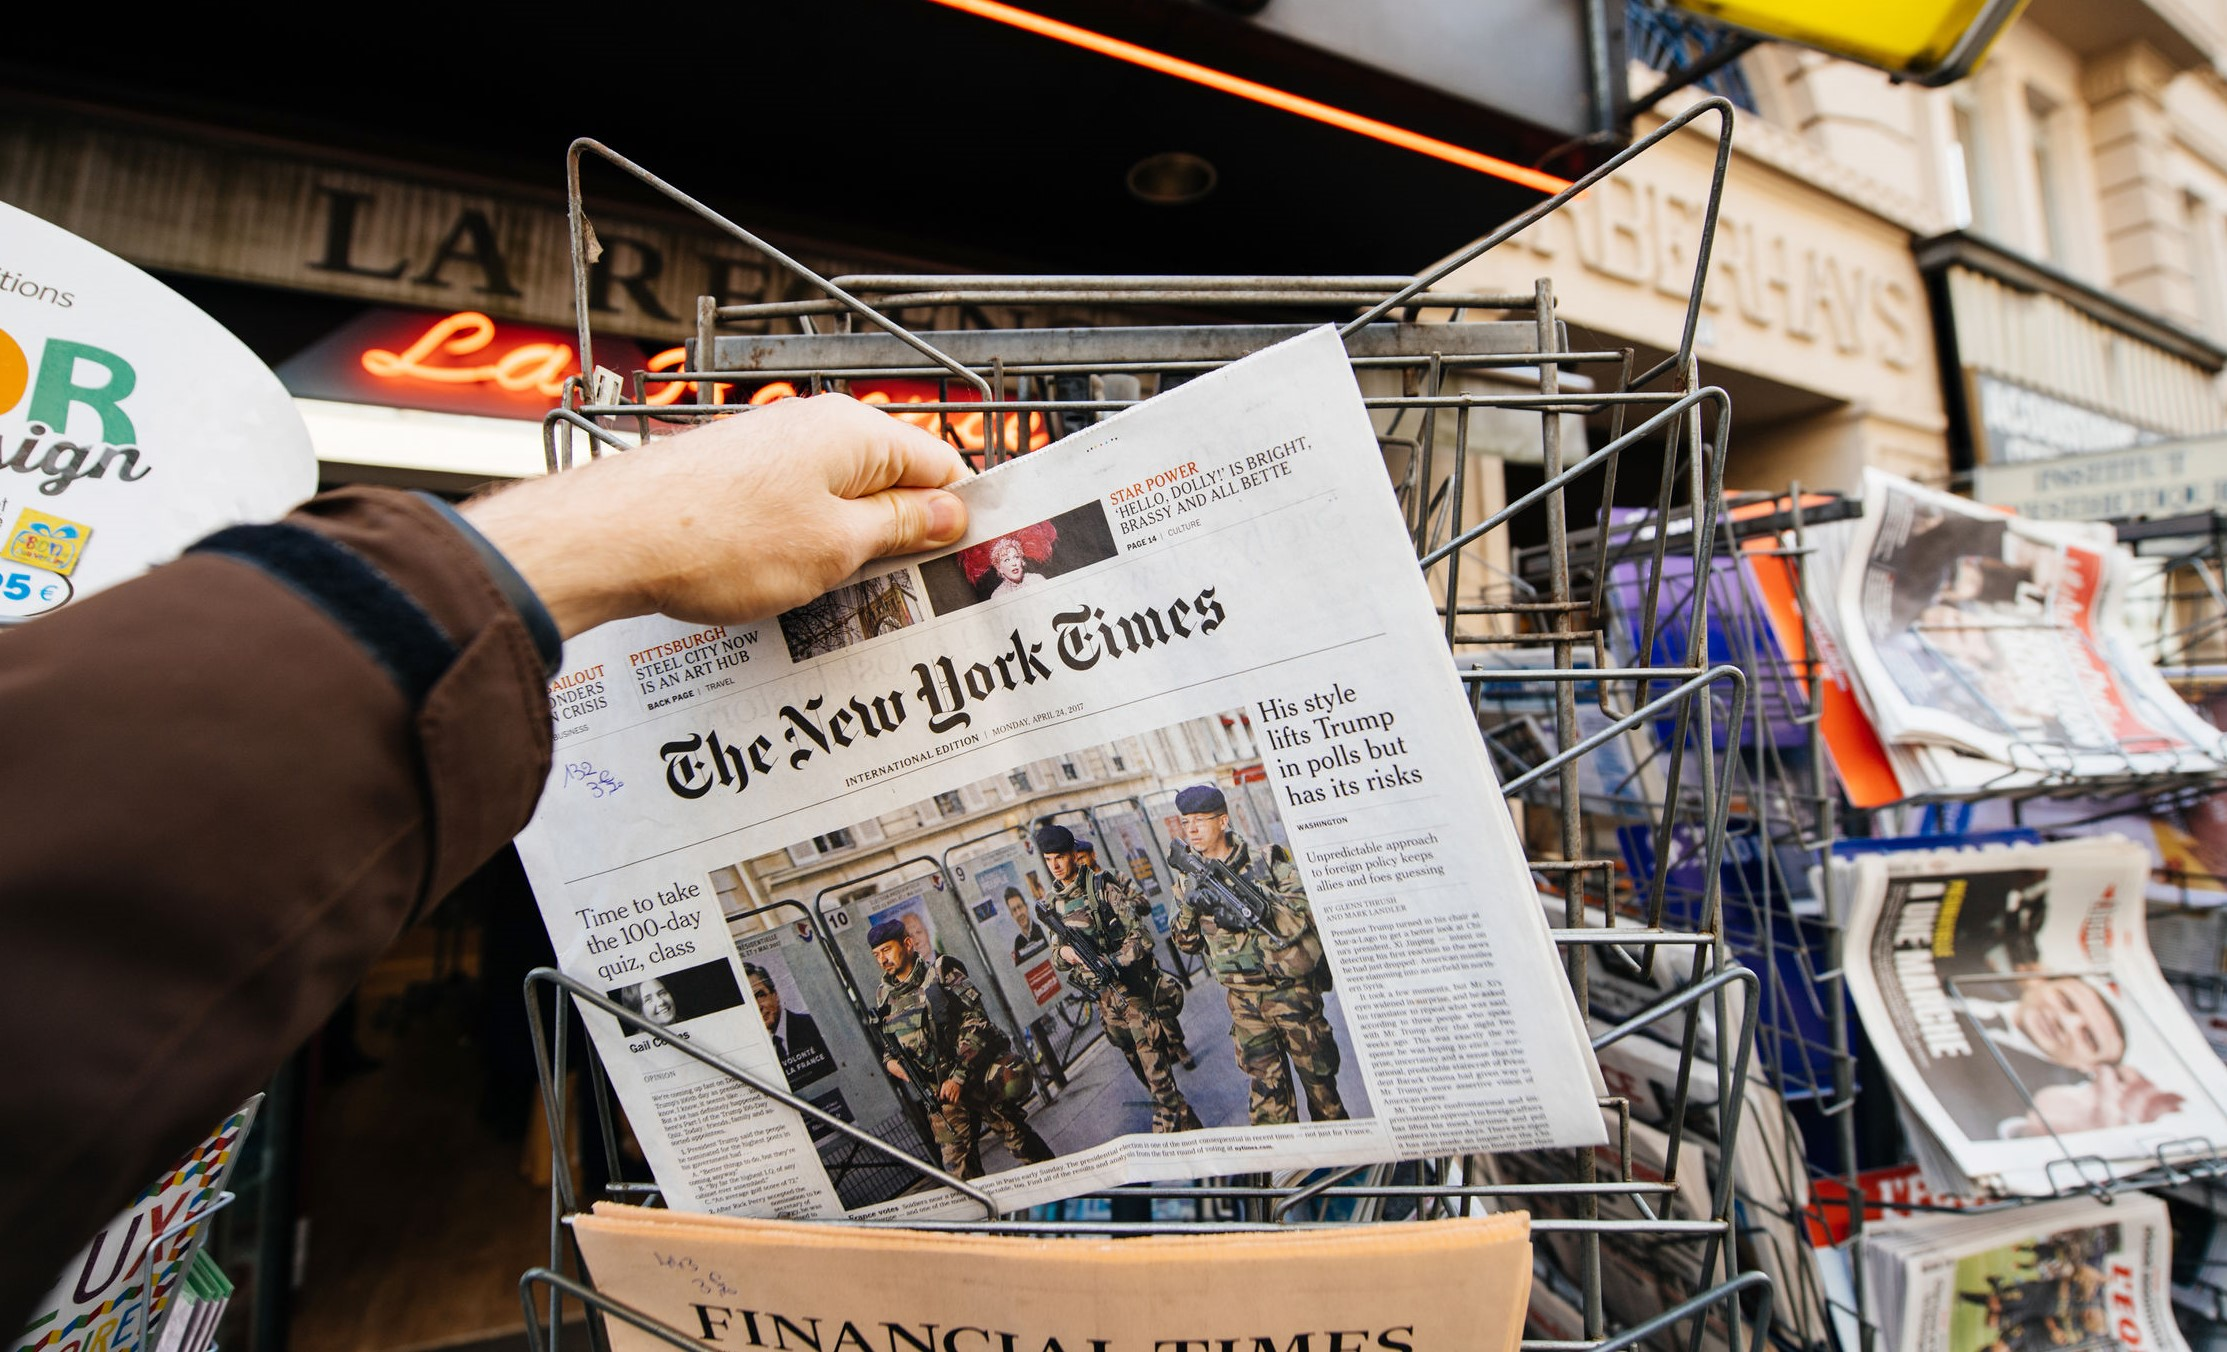 Article image for New York Times pulls the plug on political cartoons in 'knee-jerk reaction' to anti-Semitic cartoon controversy